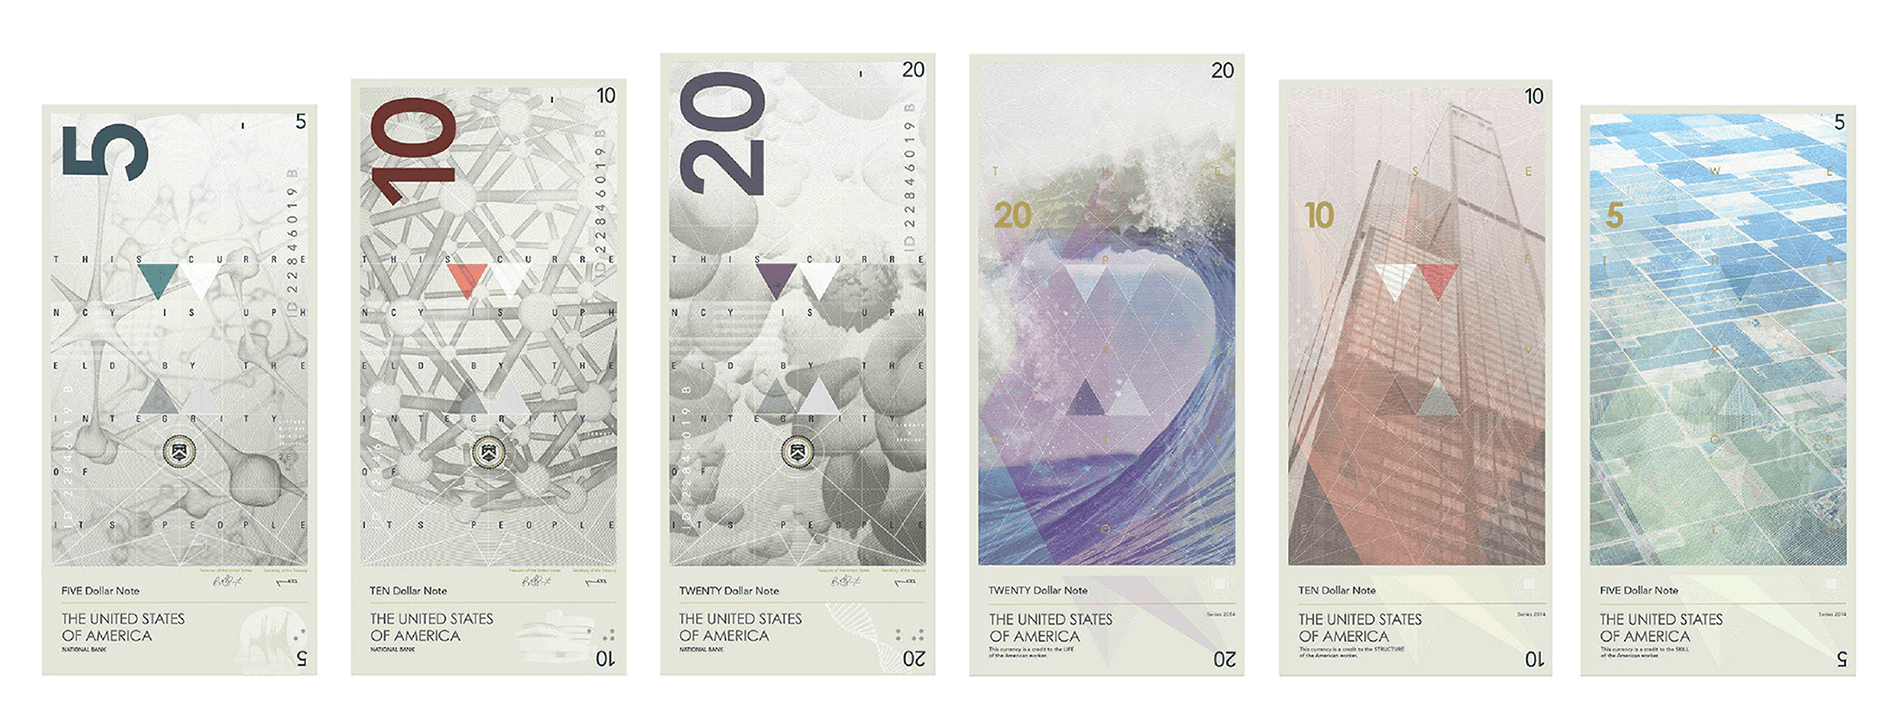 Design concept for US currency